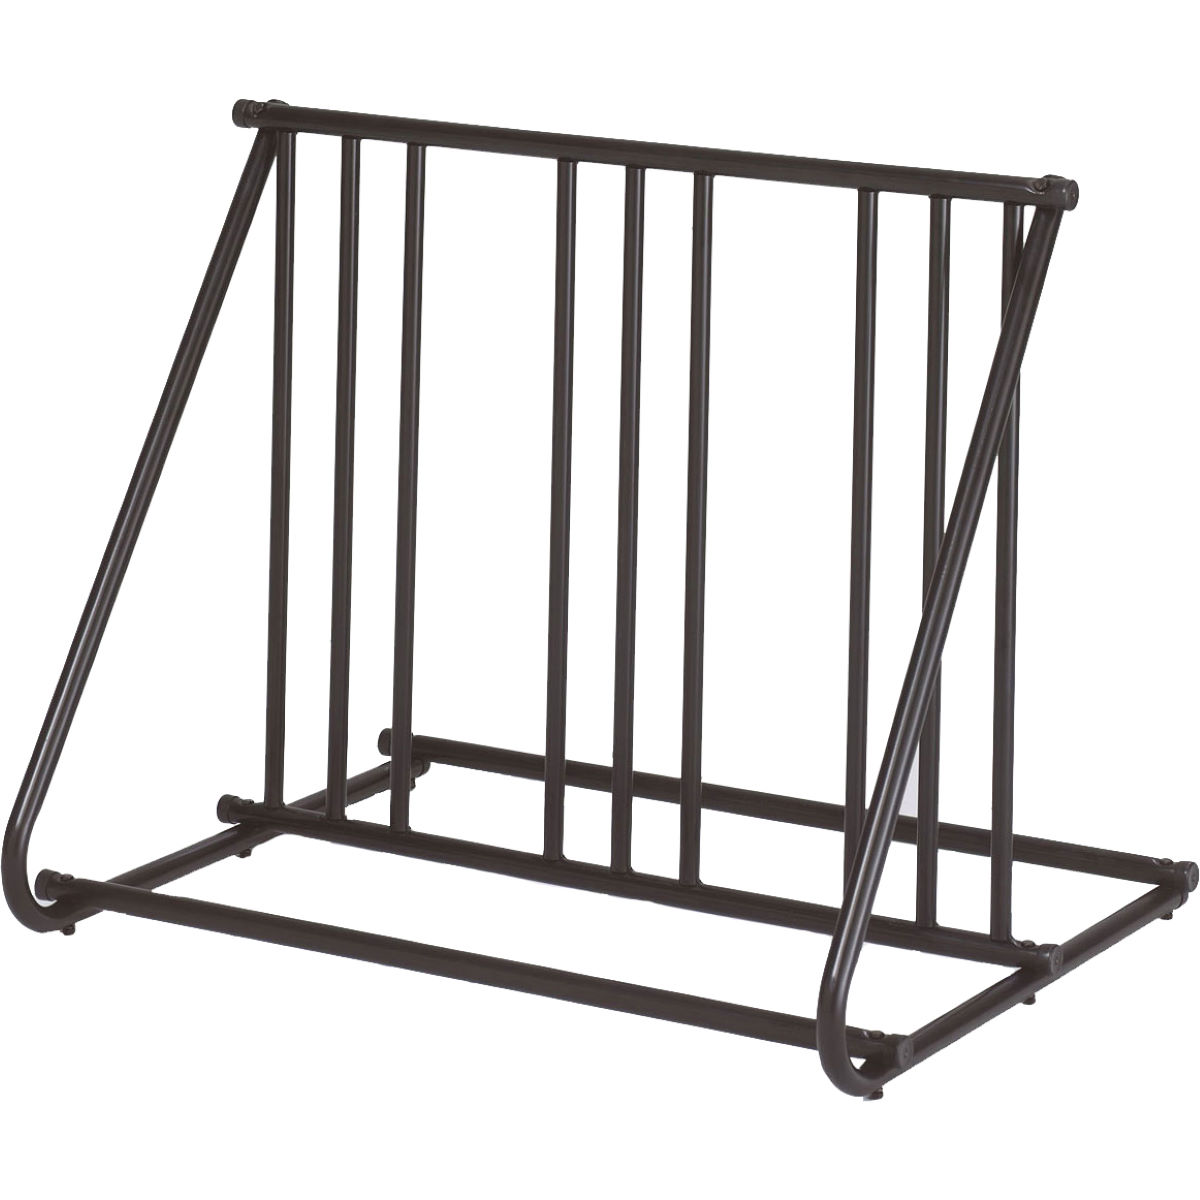 Saris Mighty Mite Cycle Stand